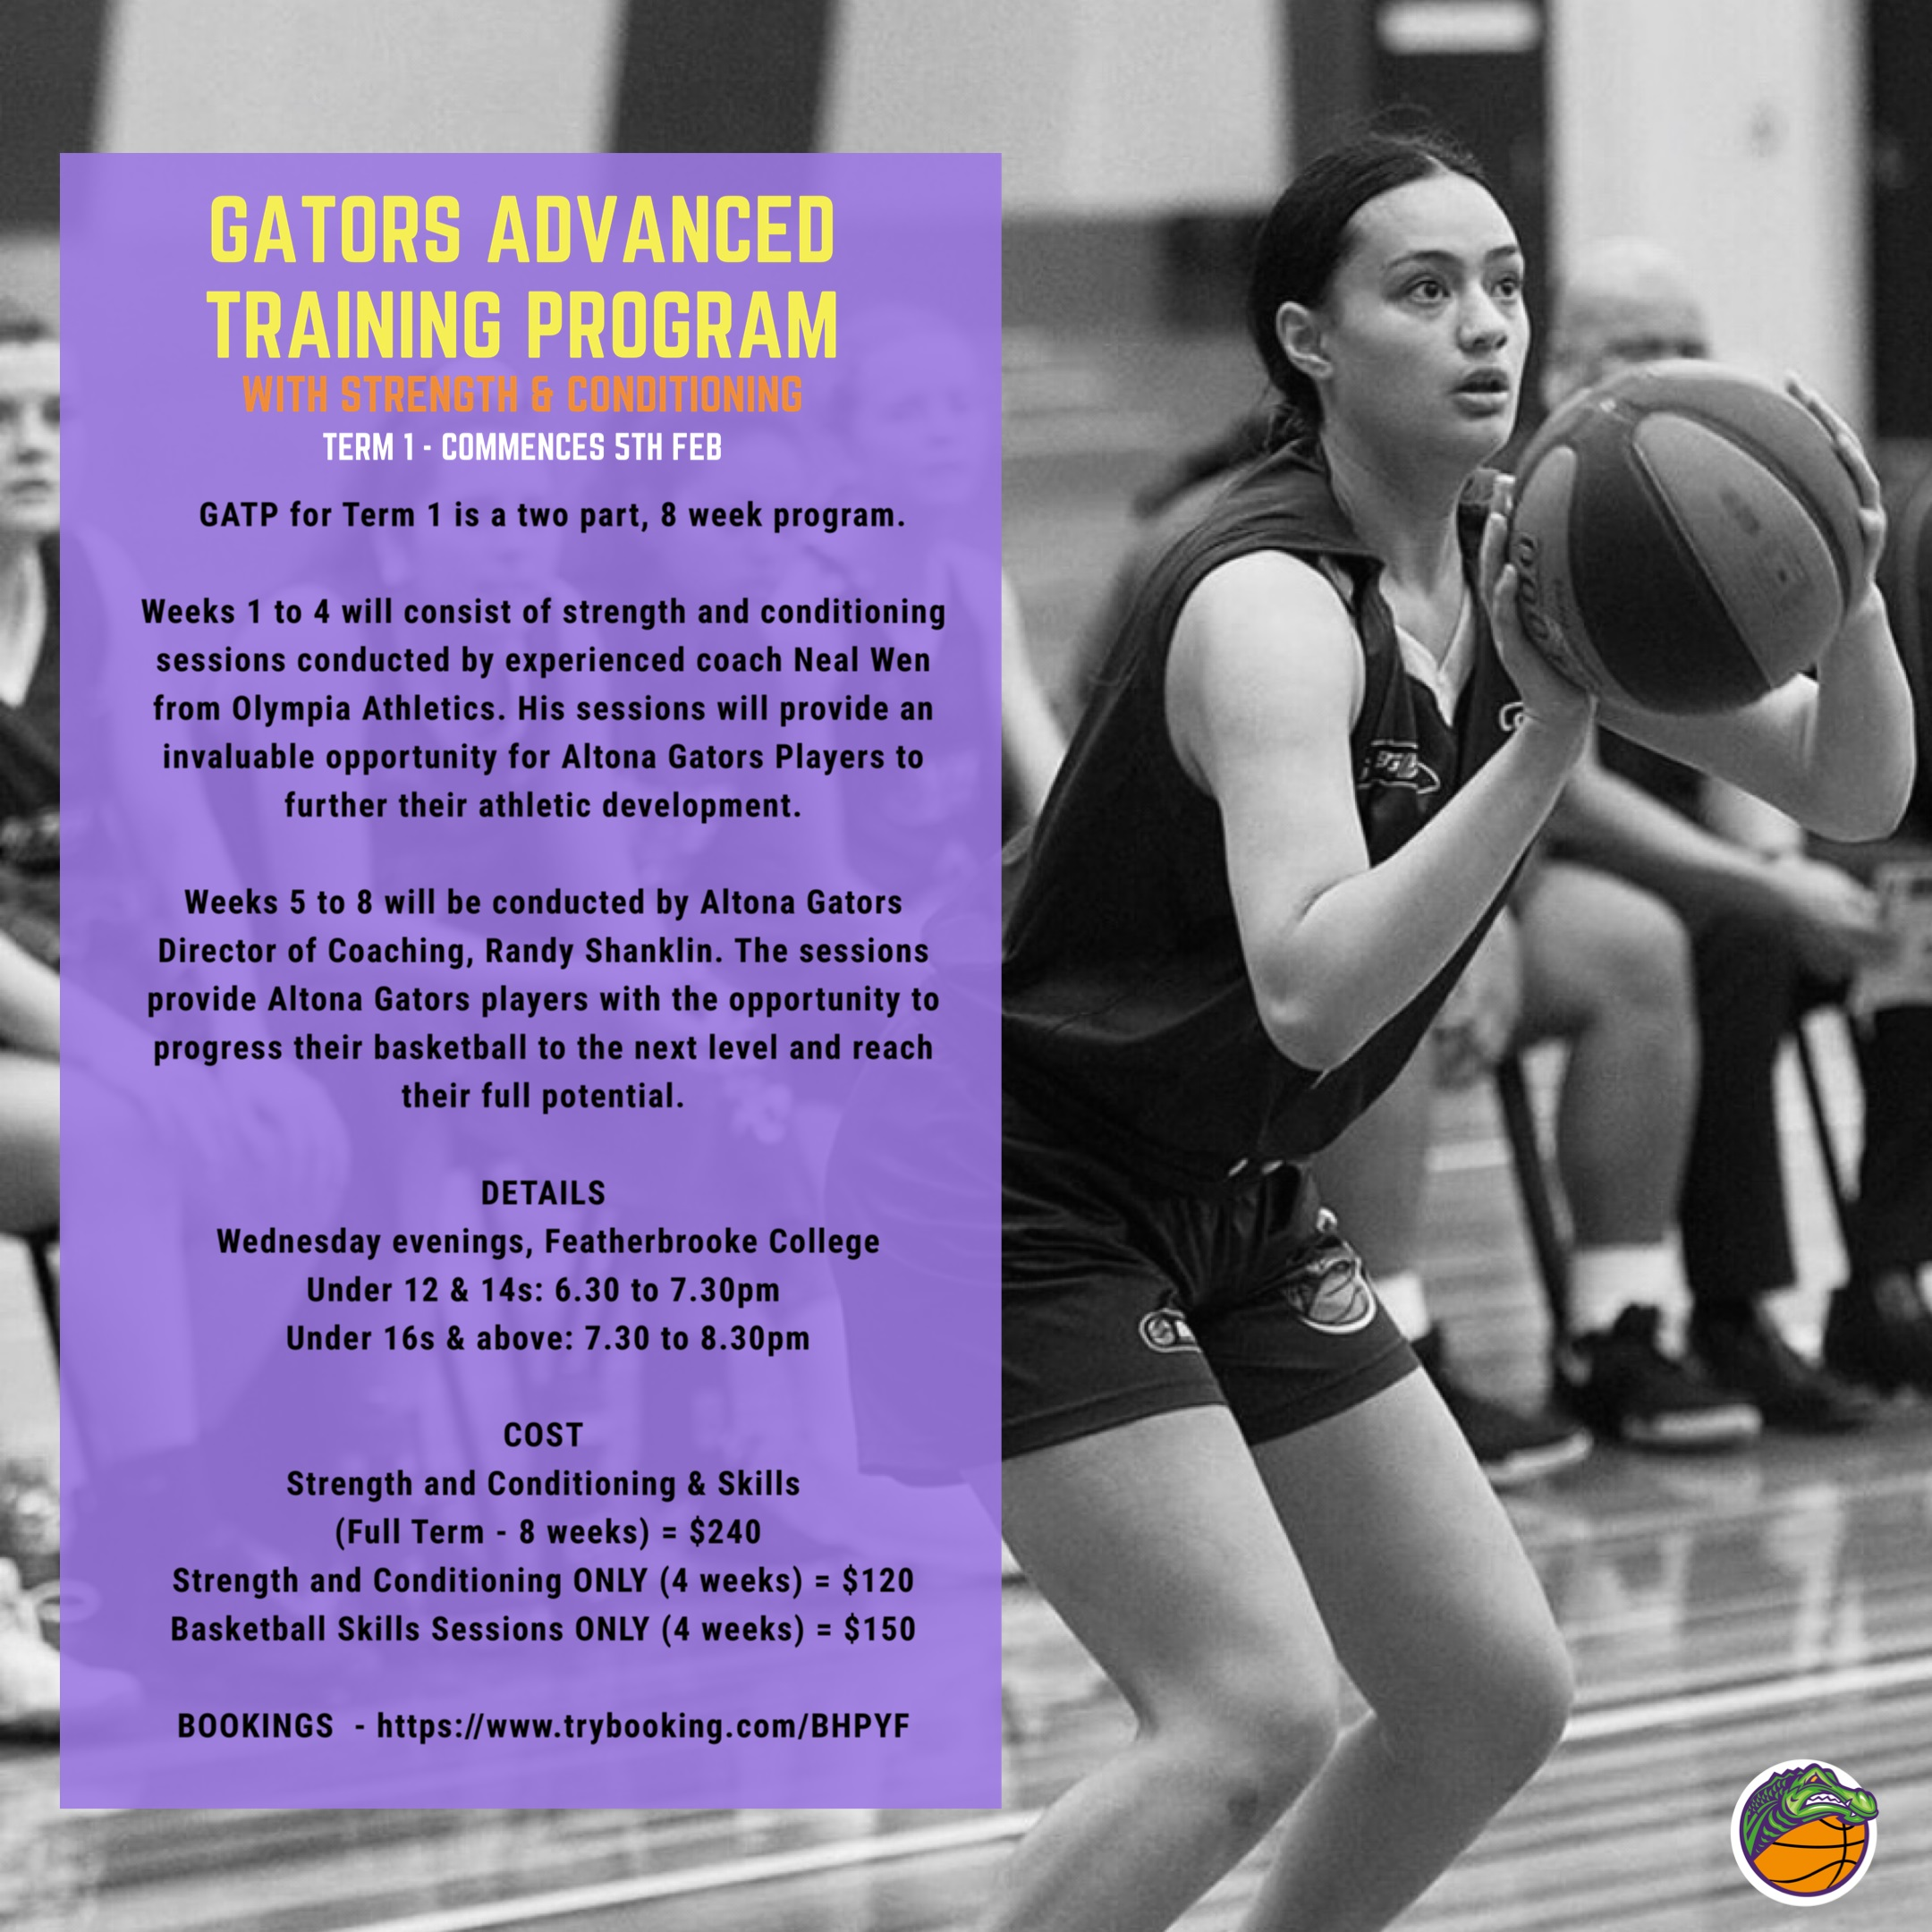 https://altonabasketball.com.au/wp-content/uploads/2020/01/Altona-Gators-Advanced-Training-Program-GATP-Term-1-2020-Updated.jpg